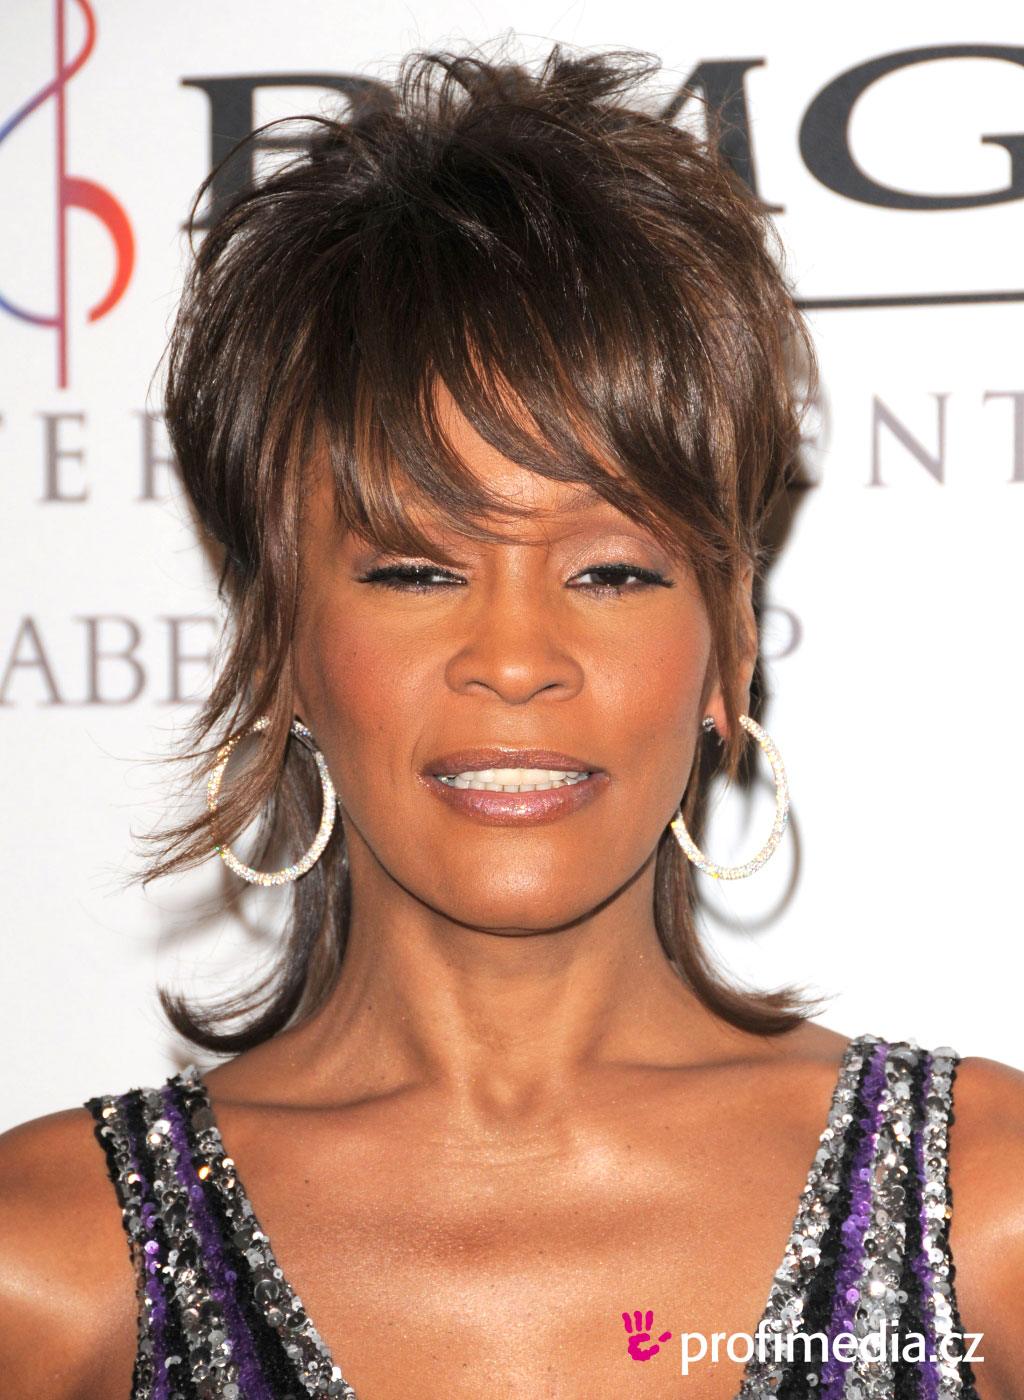 Whitney Houston Frisur Zum Ausprobieren In EFrisuren